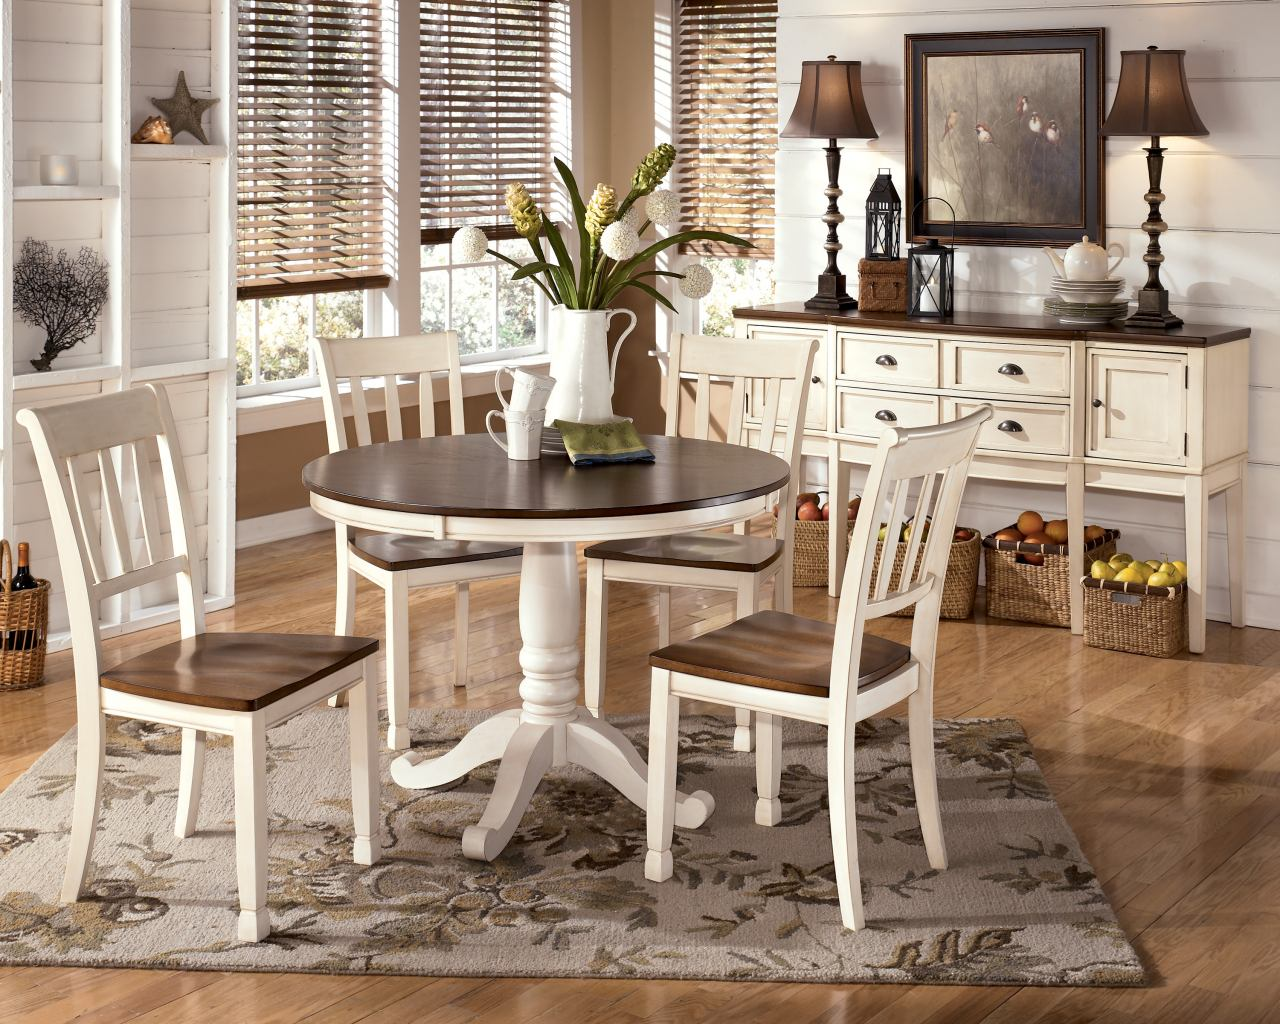 whitesburg 5 piece round dining table set in brown white white kitchen table Whitesburg 5 Piece Round Dining Table Set in Brown White